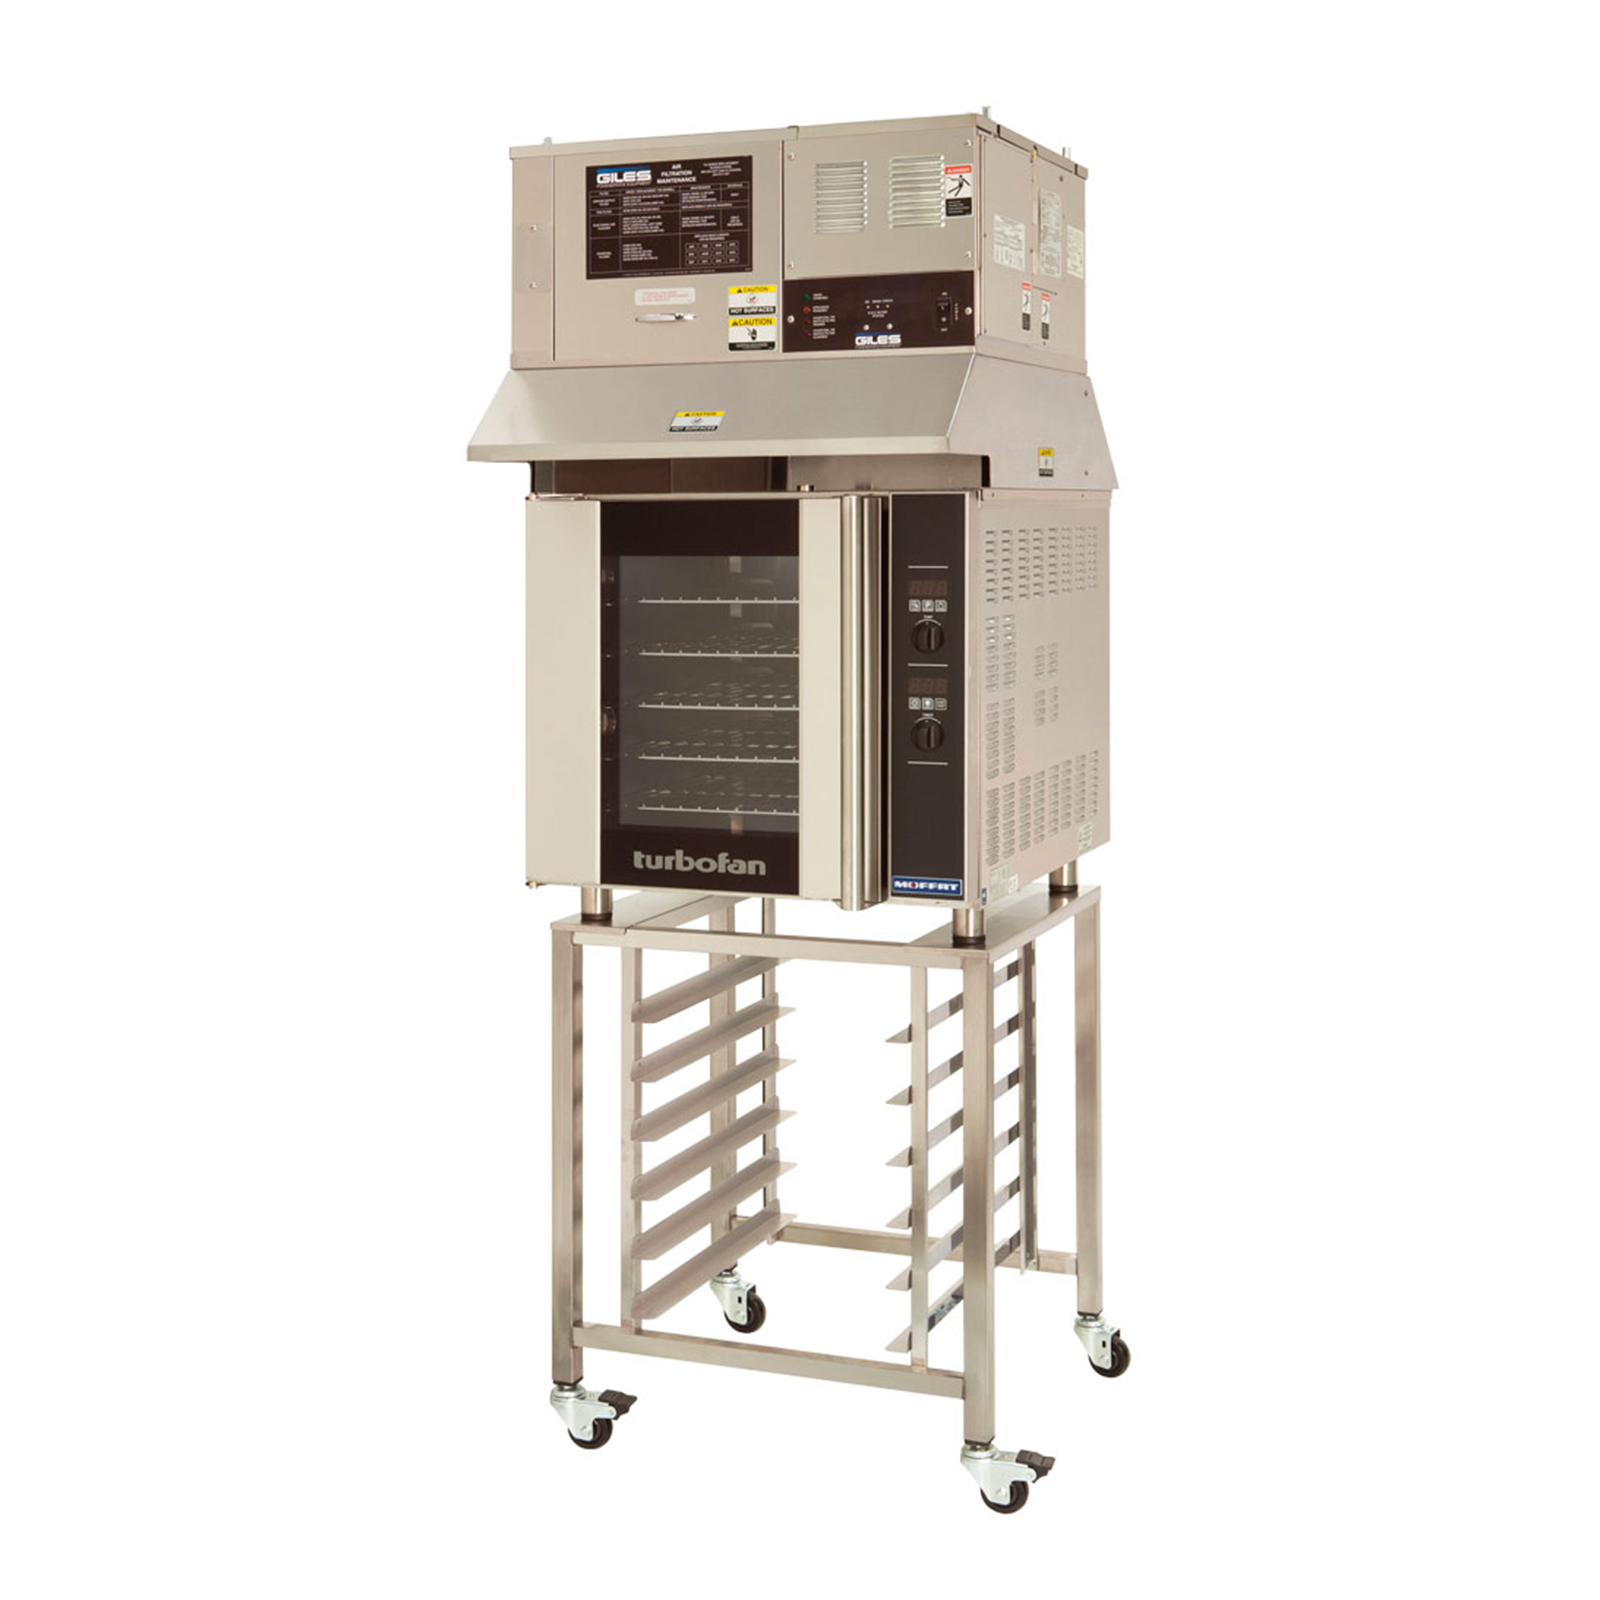 Moffat E32D5/OVH32/SK32 convection oven, electric